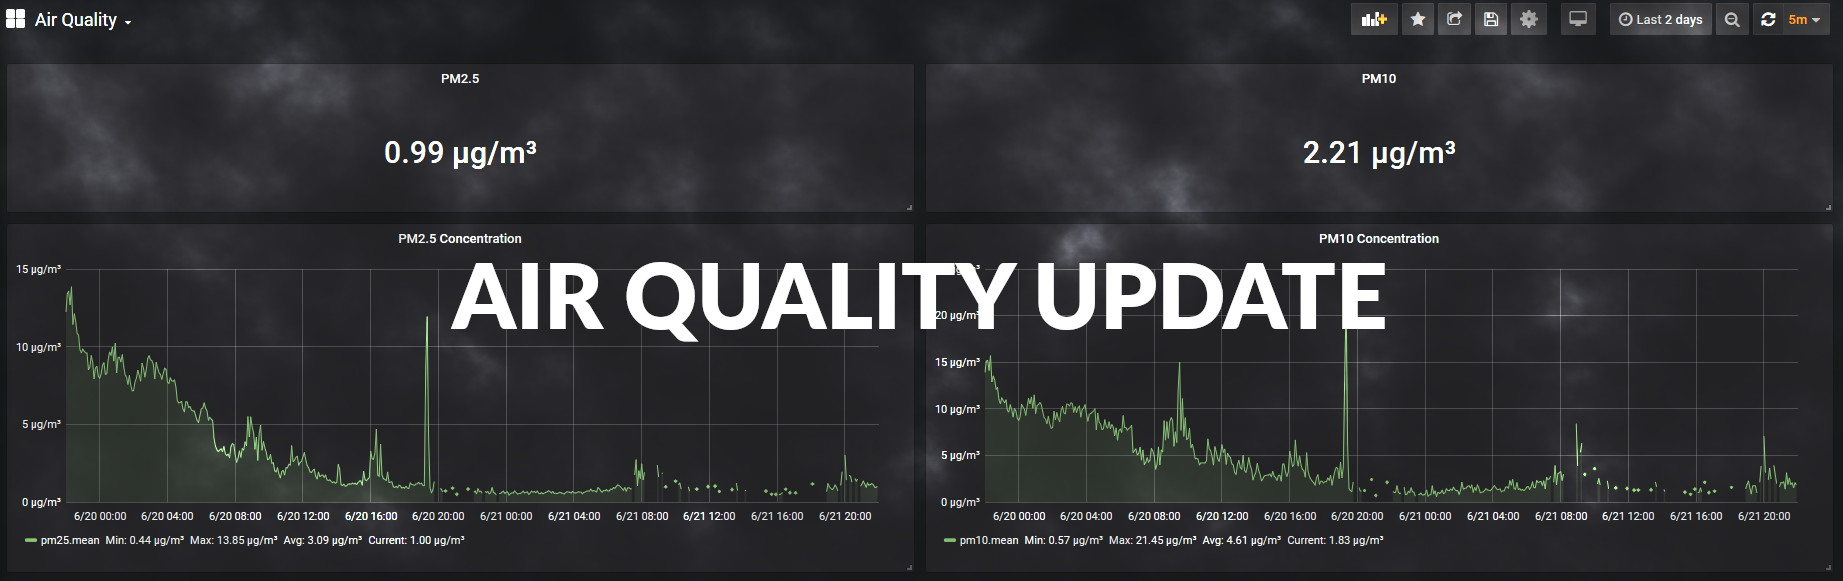 Card image for An Air Quality Update